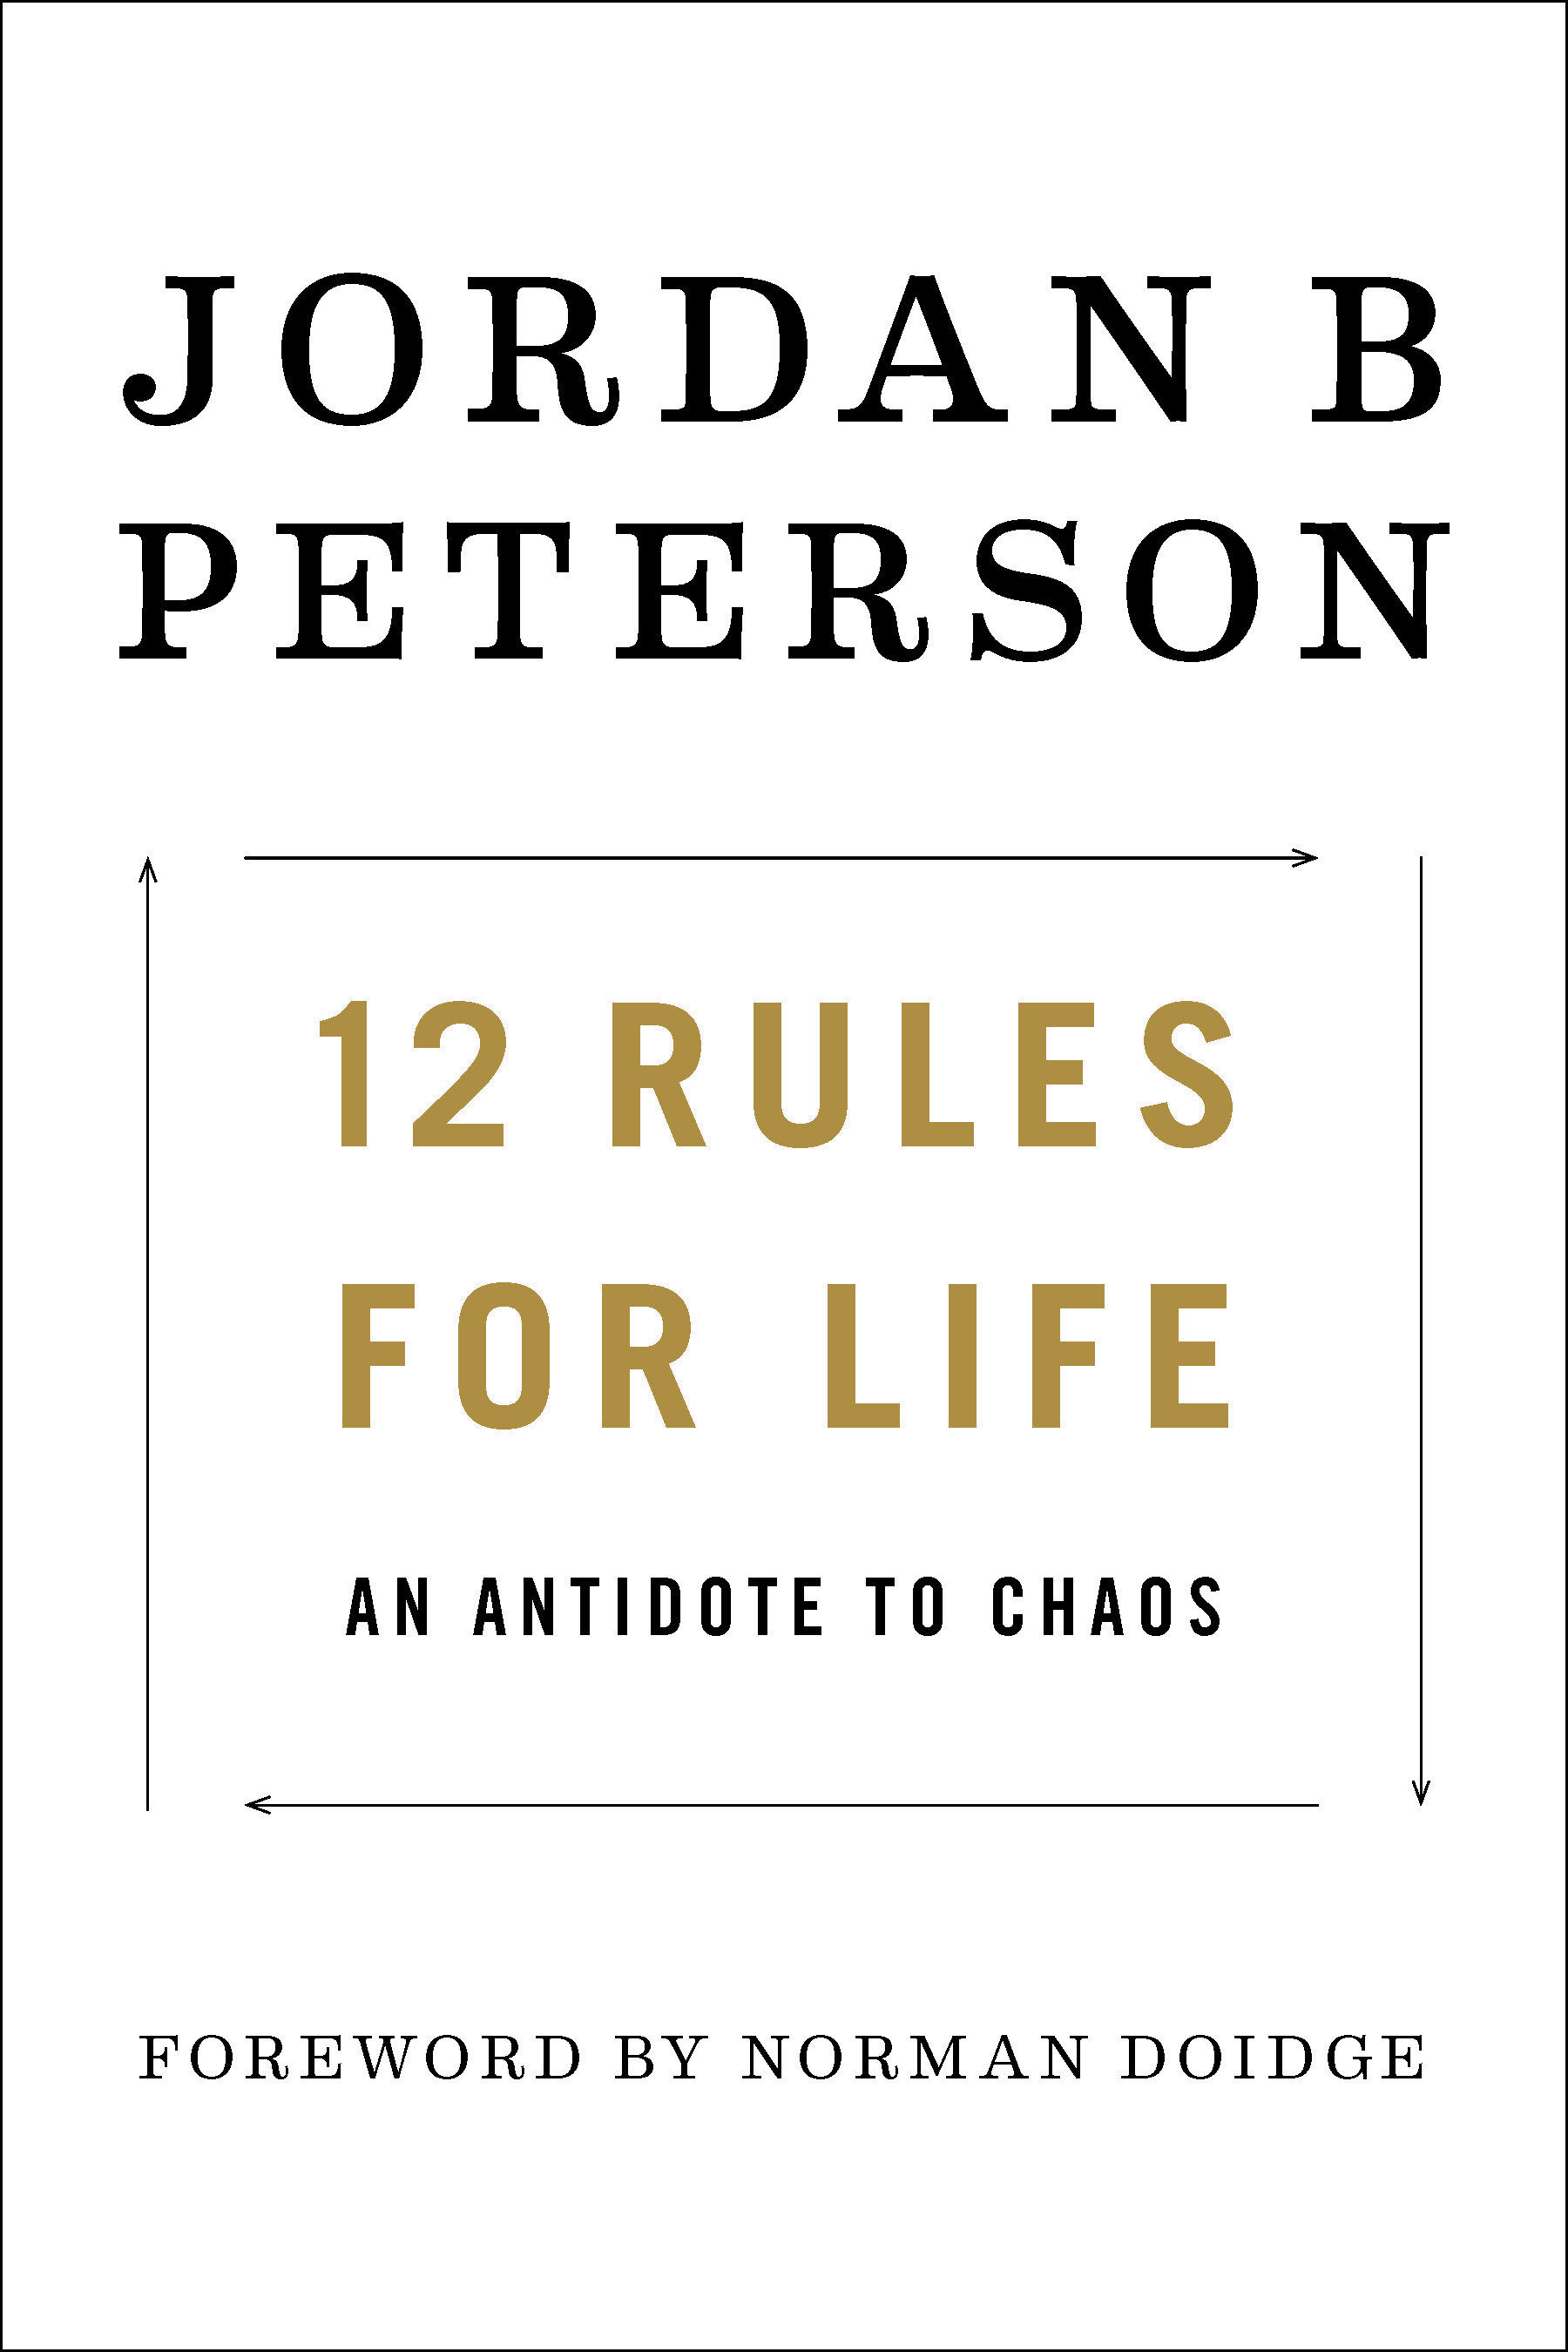 Dr. Peterson's book: 12 Rules for Life: An Antidote to Chaos was released  on January 23, 2018. Dr. Peterson is a professor at the University of  Toronto, ...